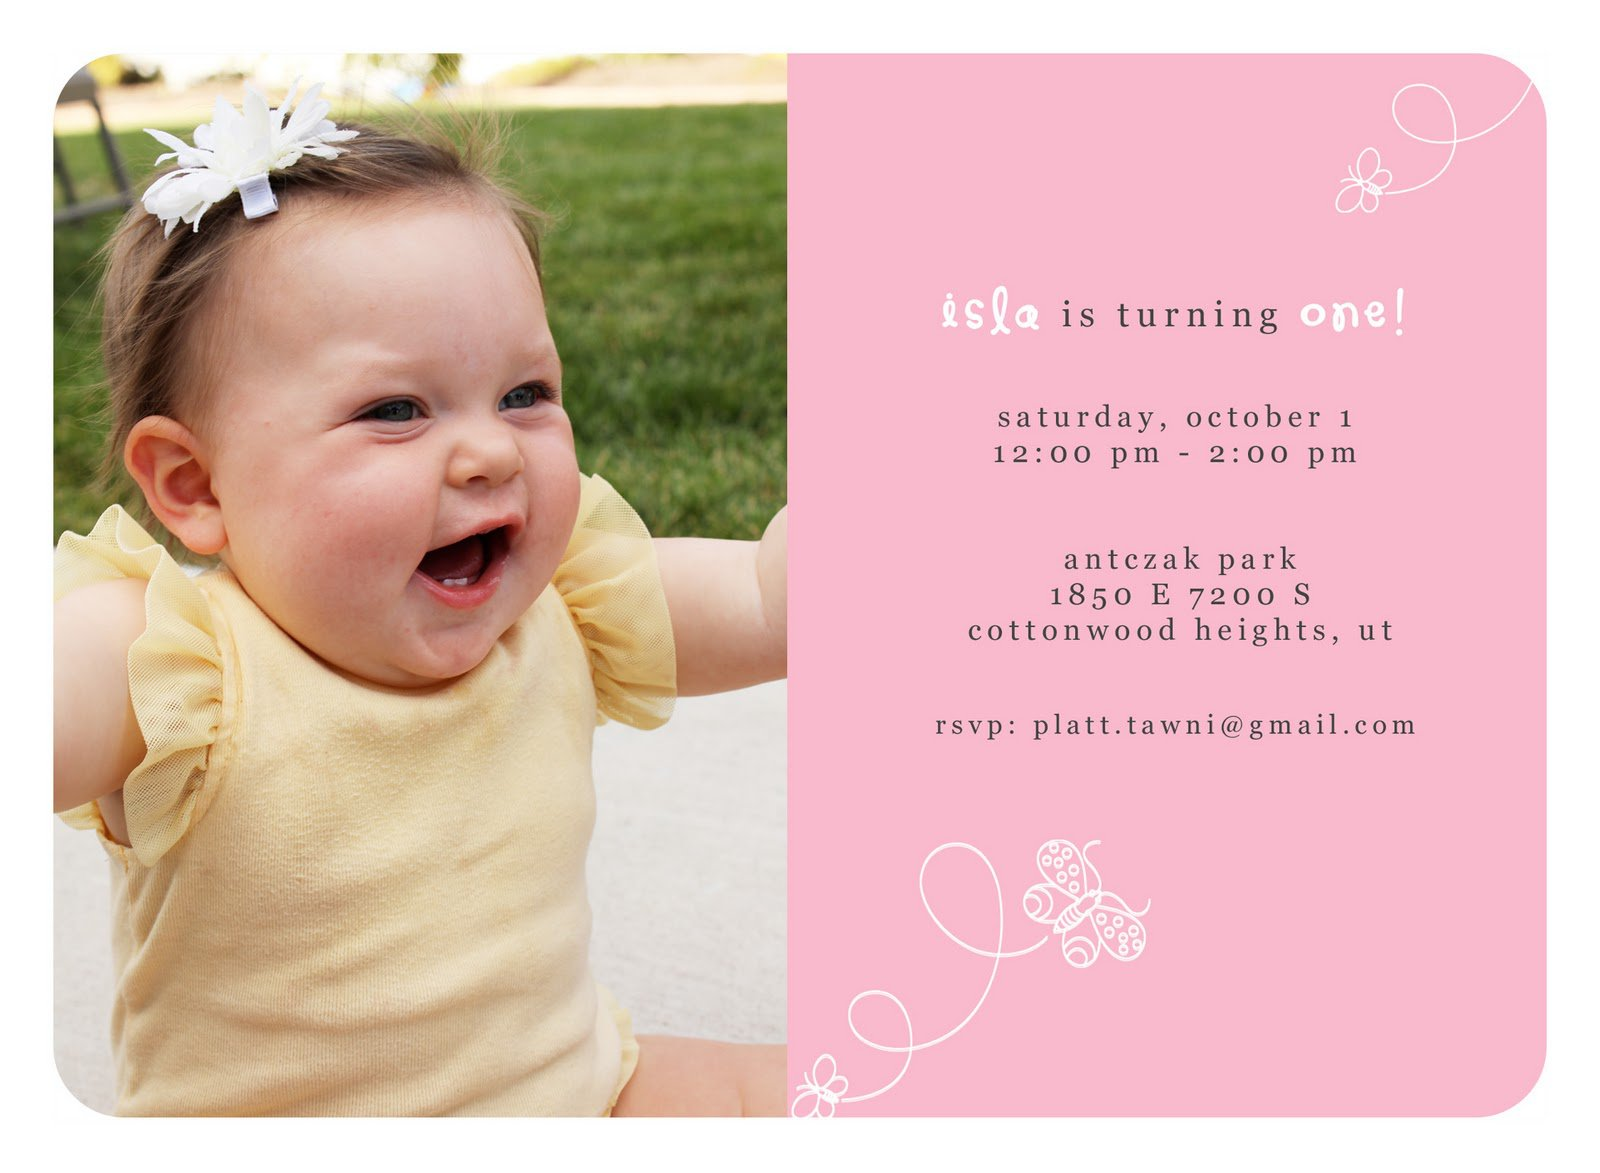 first birthday invitations free printable - Etame.mibawa.co